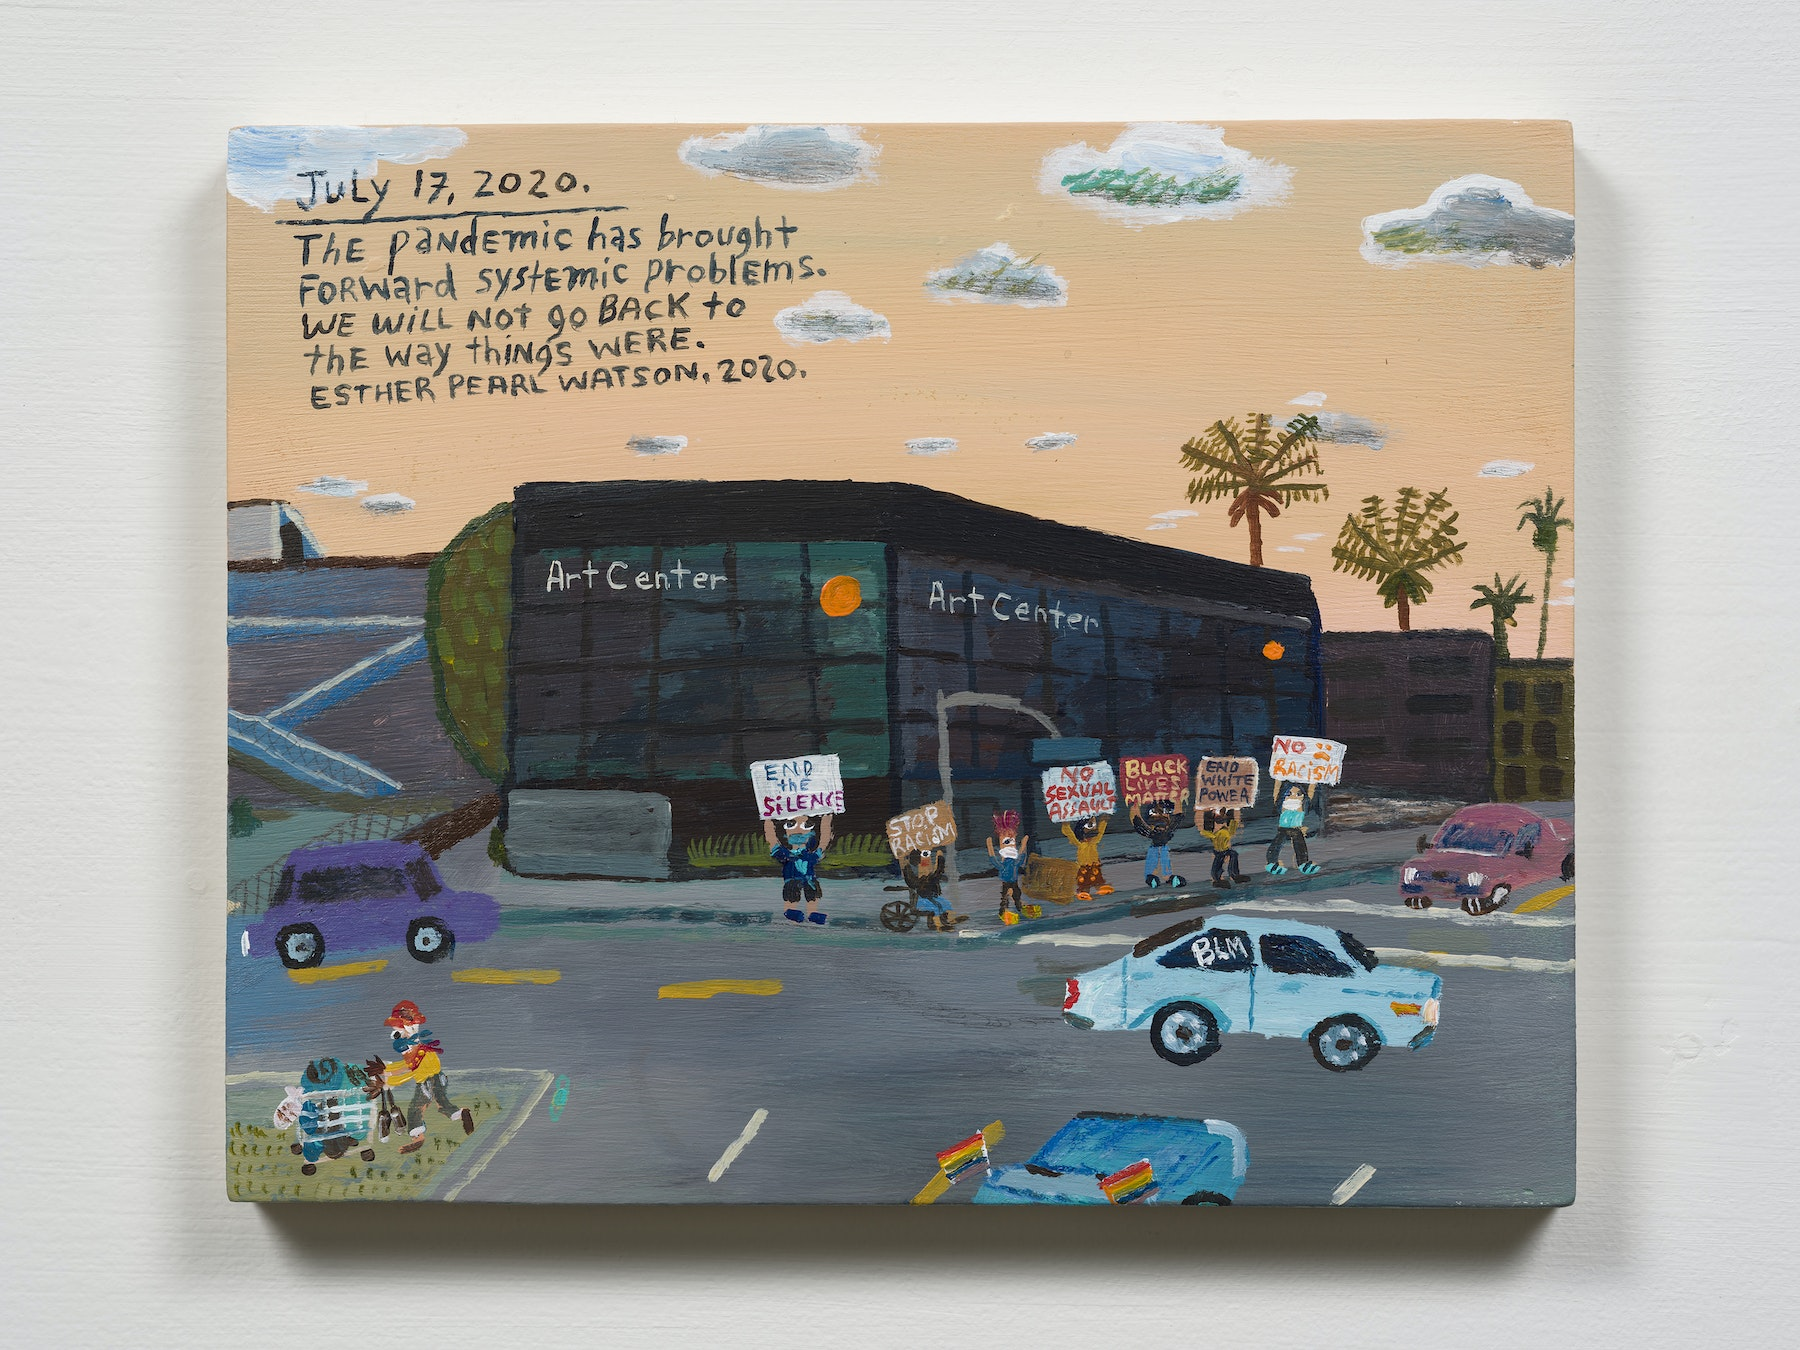 """Esther Pearl Watson """"July 17, Protest Systemic Problems,"""" 2020 Acrylic with pencil on panel 8 x 10"""" [HxW] (20.32 x 25.4 cm) Inventory #EPW312 Courtesy of the artist and Vielmetter Los Angeles Photo credit: Jeff Mclane"""